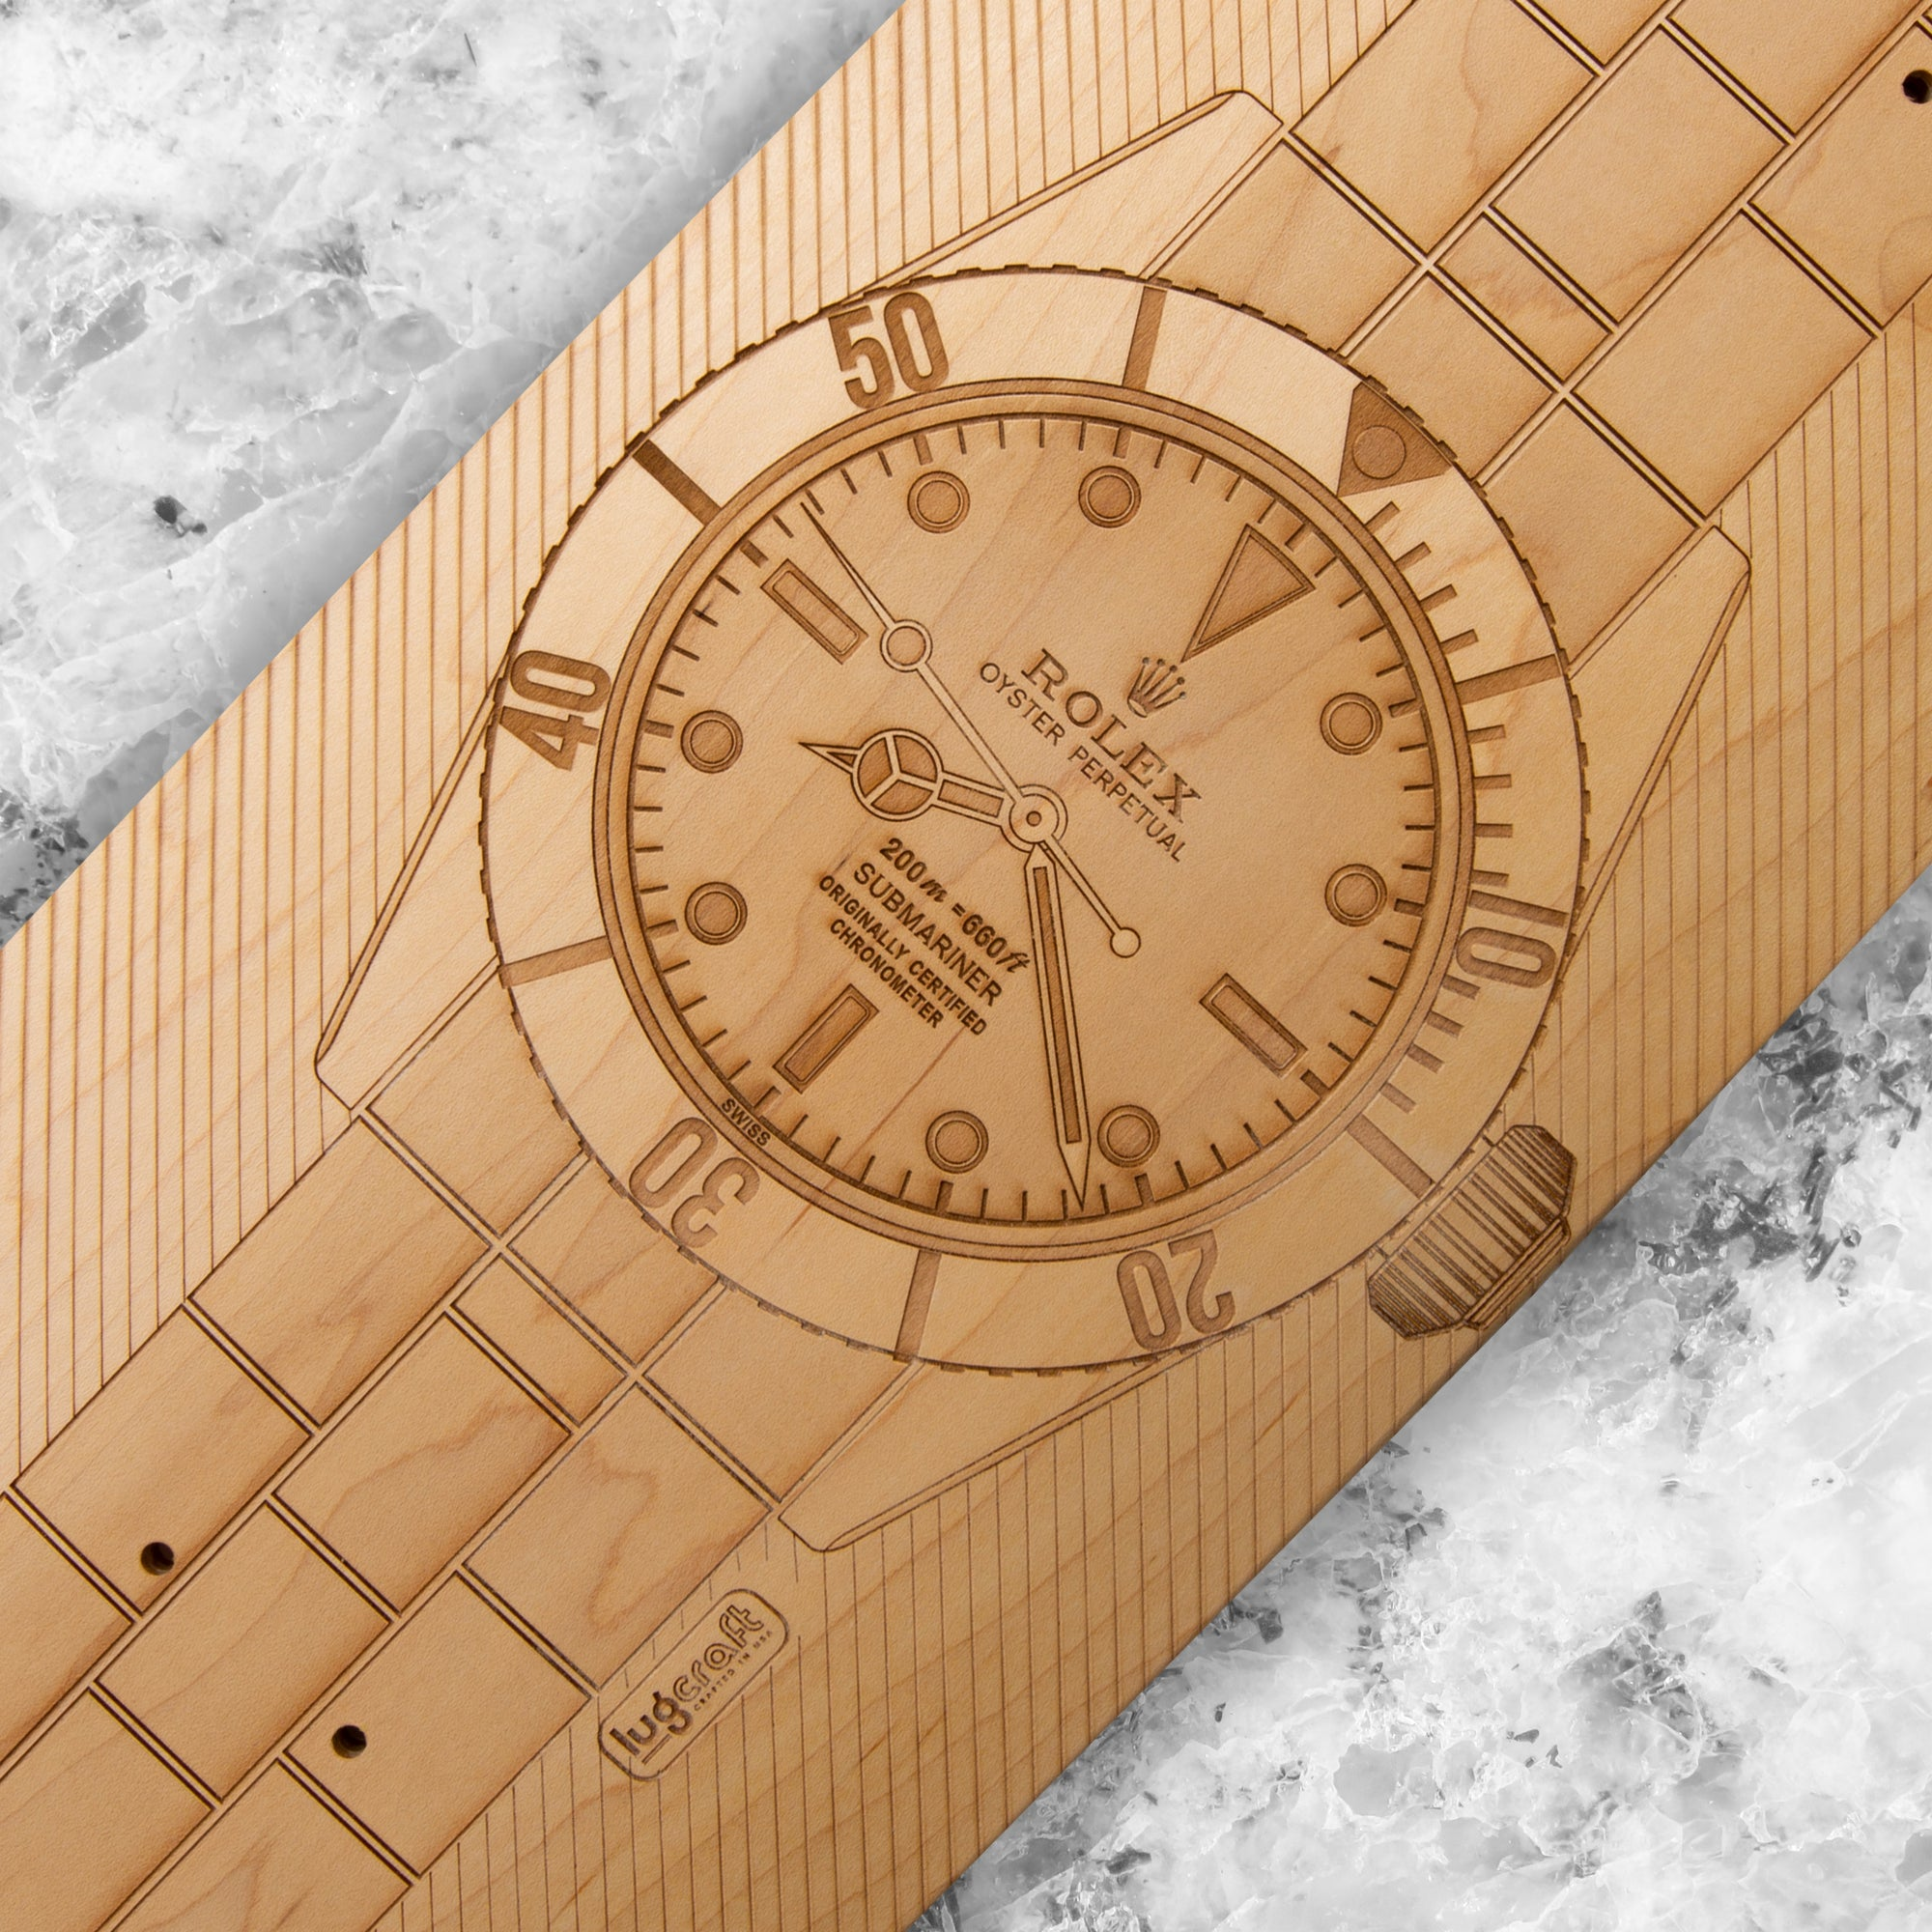 RO Submariner Big Crown Skateboard Wall Art - Natural Maple